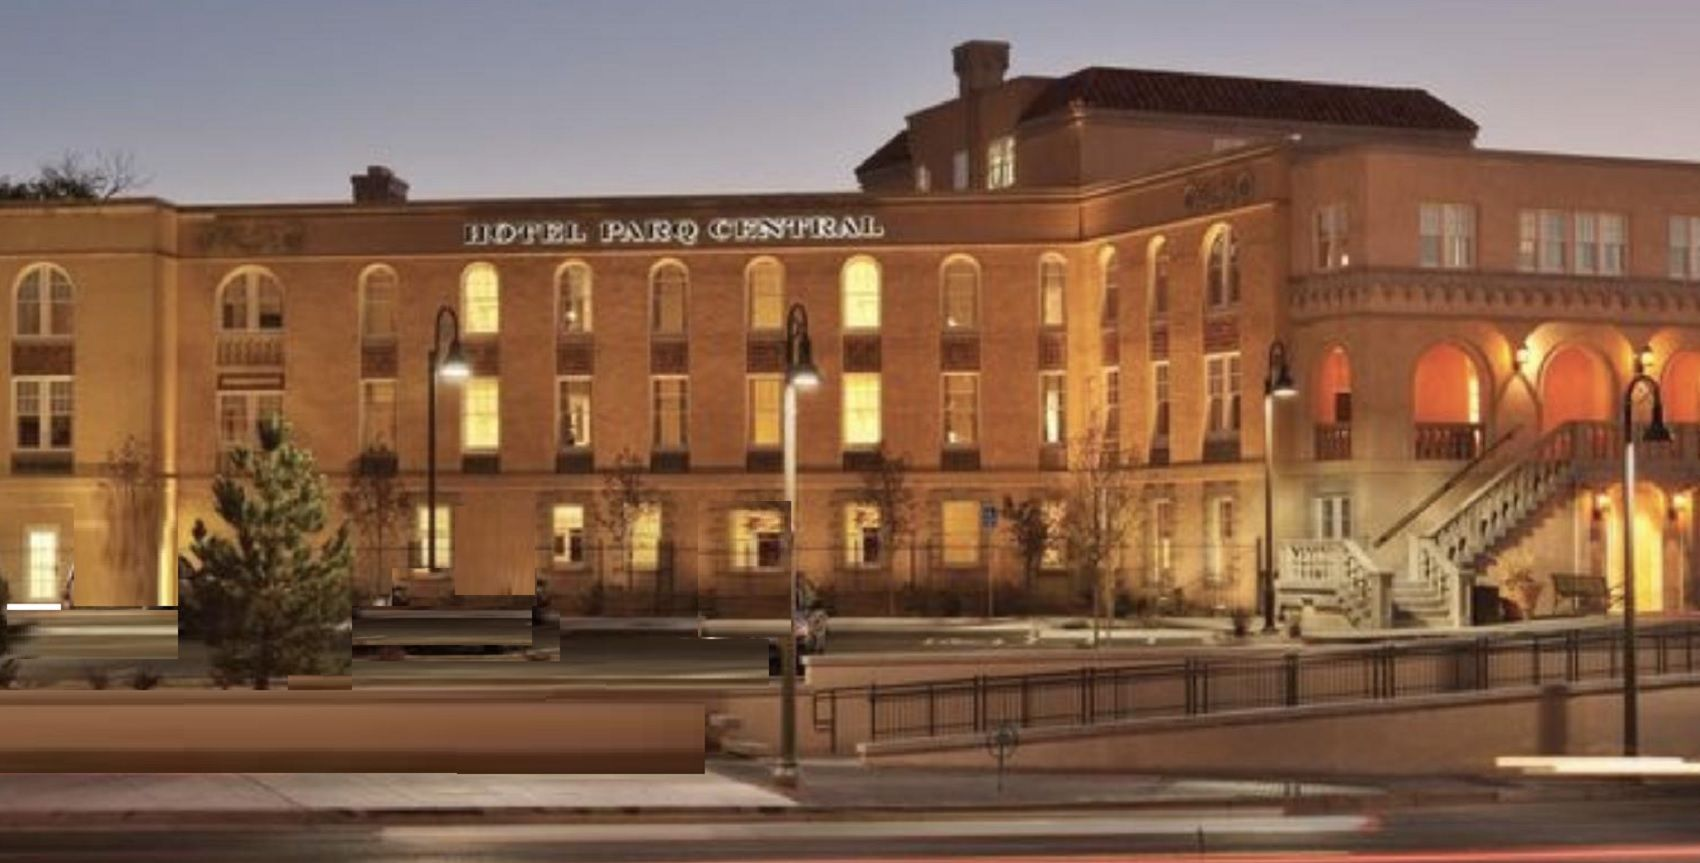 nm-hotel-parq-central-00-haunted-journeys